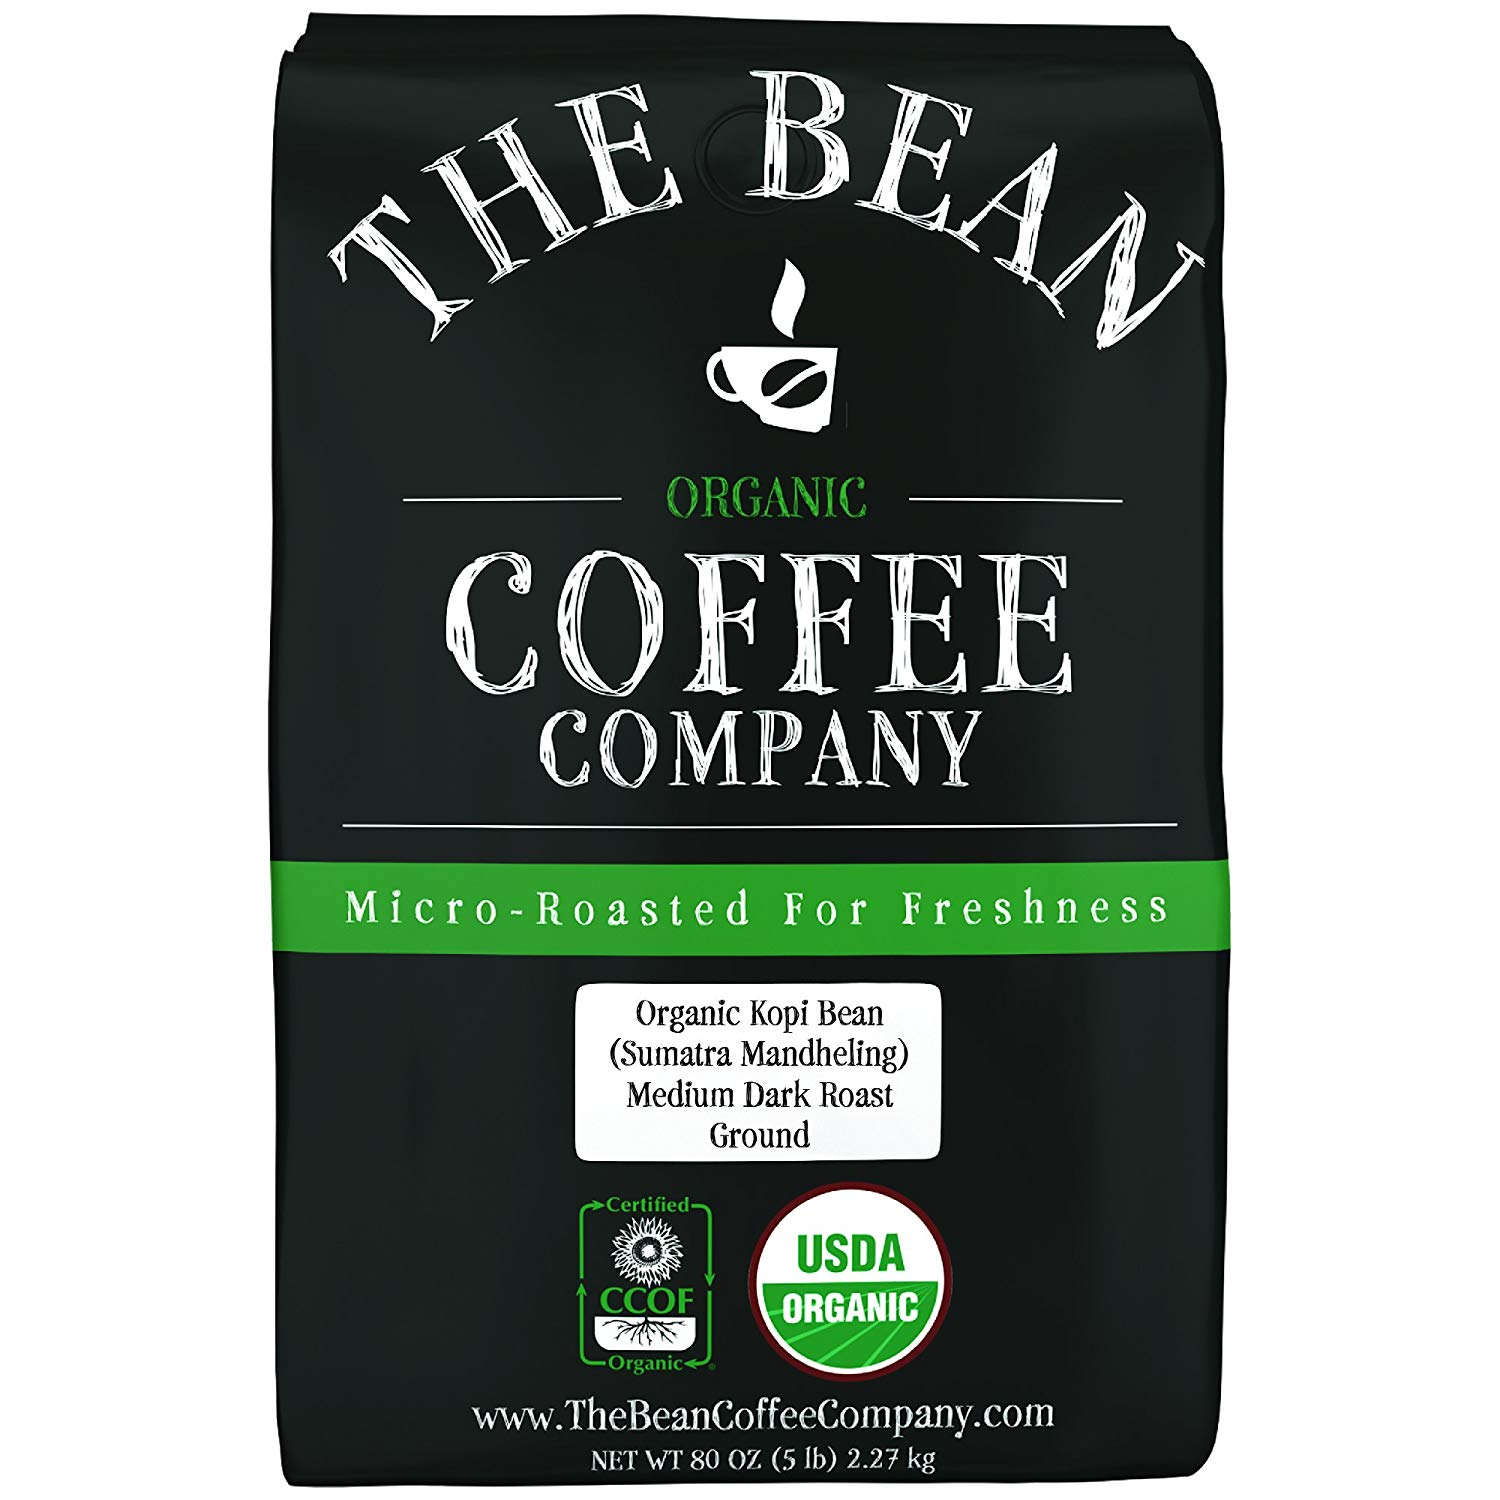 The Bean Coffee Company Organic Kopi Bean (Sumatra Mandheling), Medium Dark Roast, Ground, 5-Pound Bag